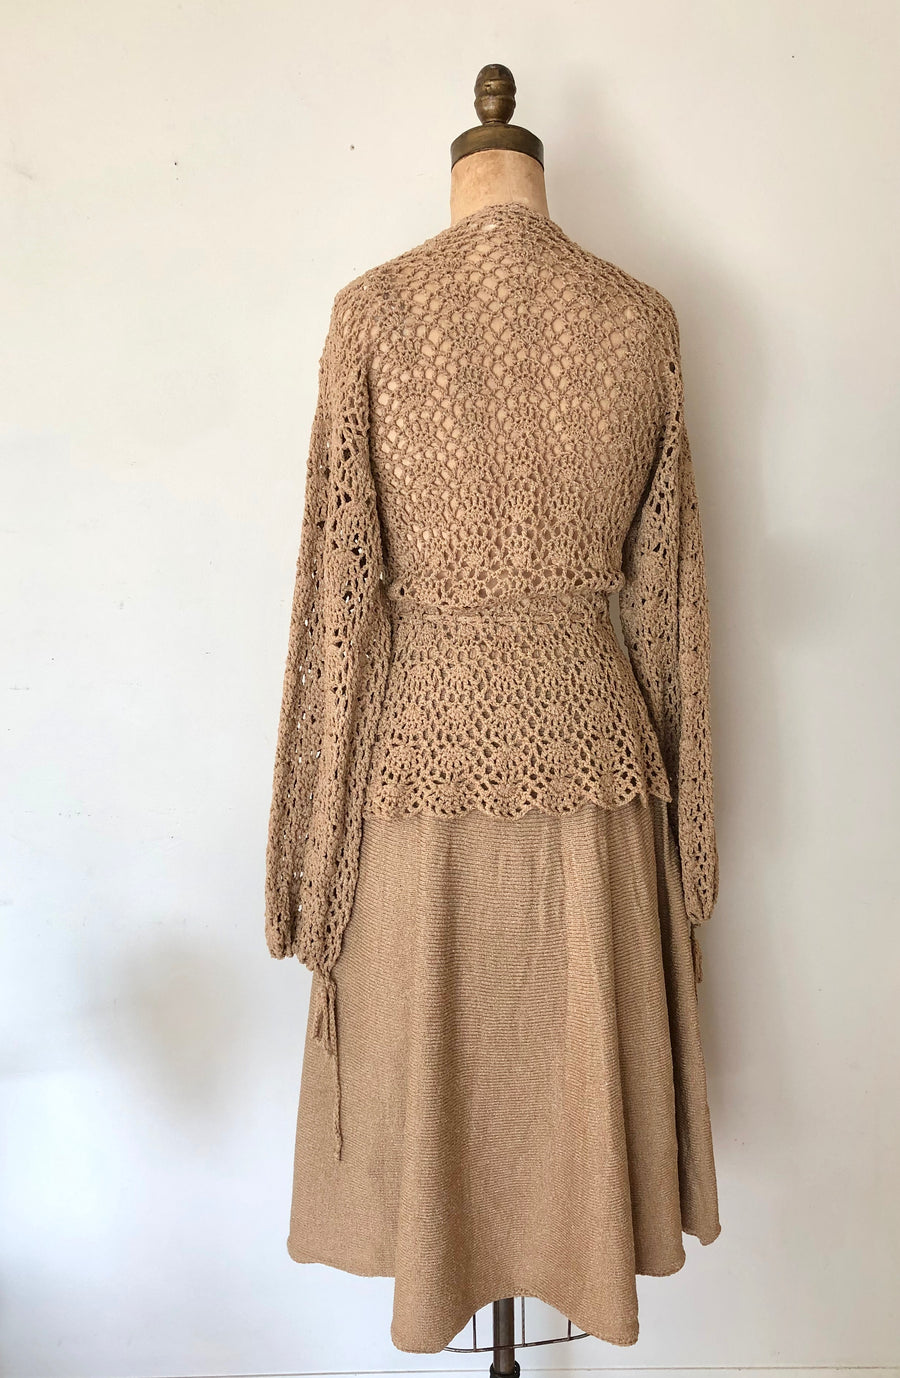 1970's Crochet Sweater & Skirt Set - Size M/L